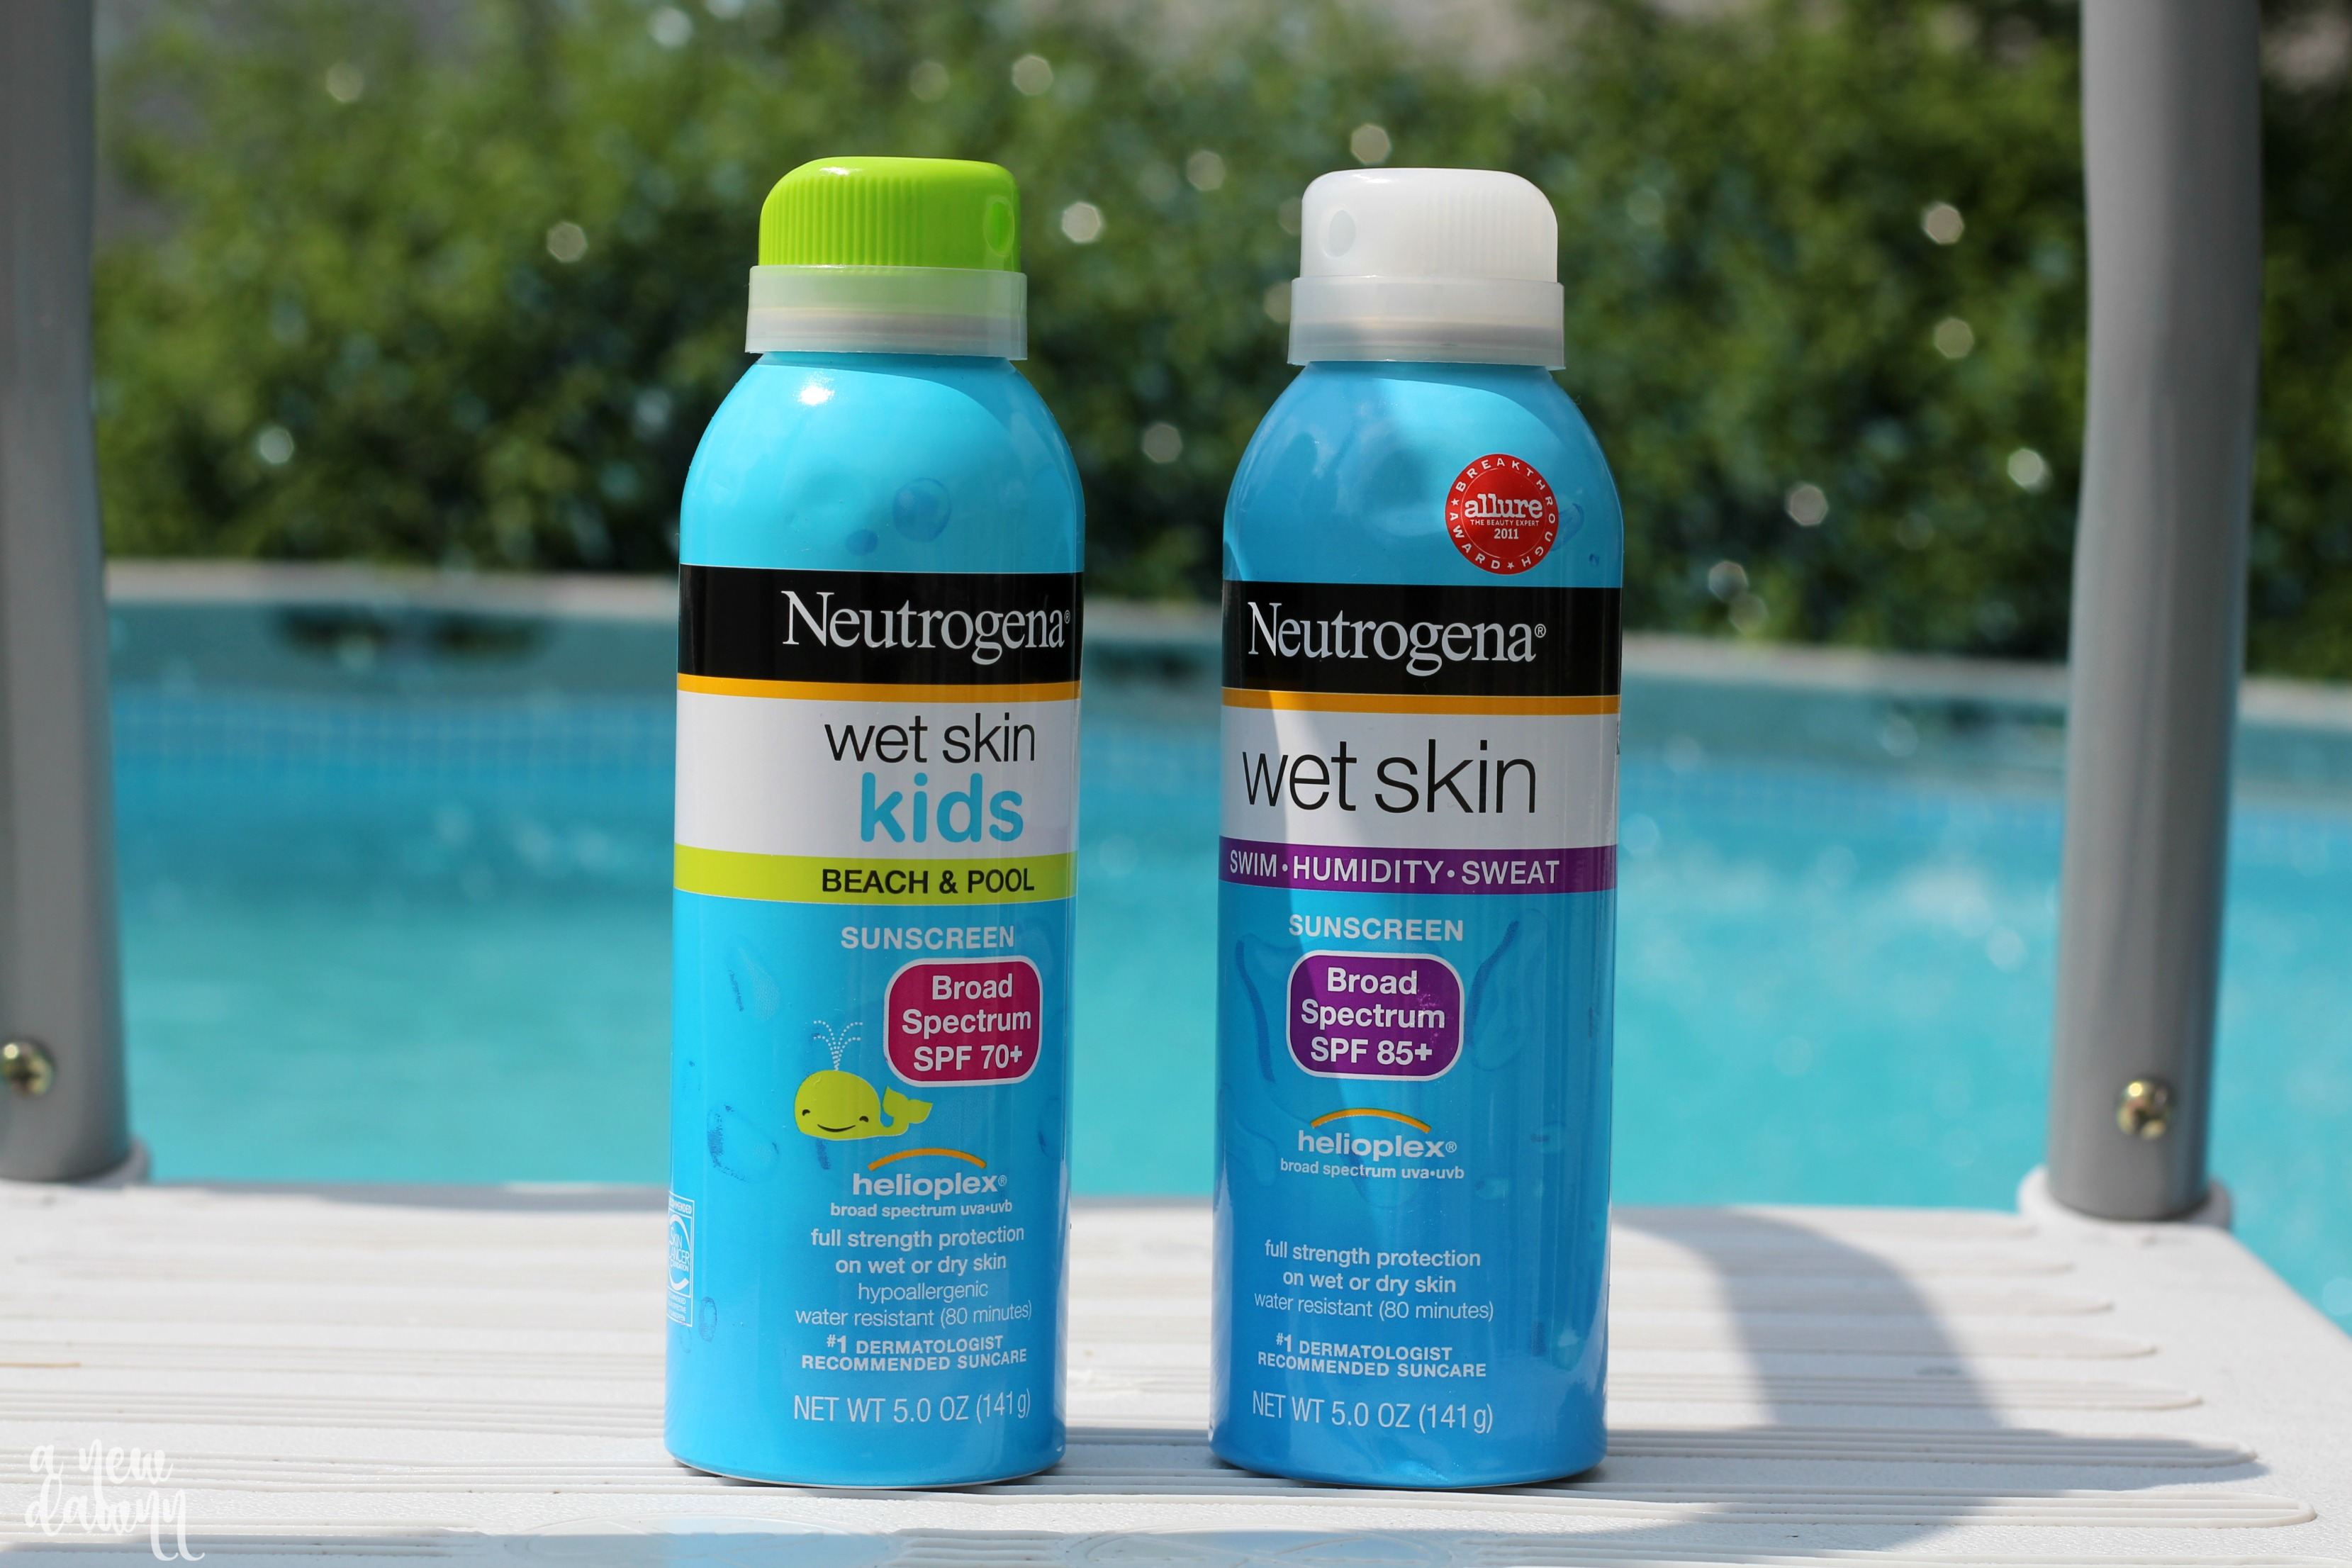 #ChooseSkinHealth with Neutrogena